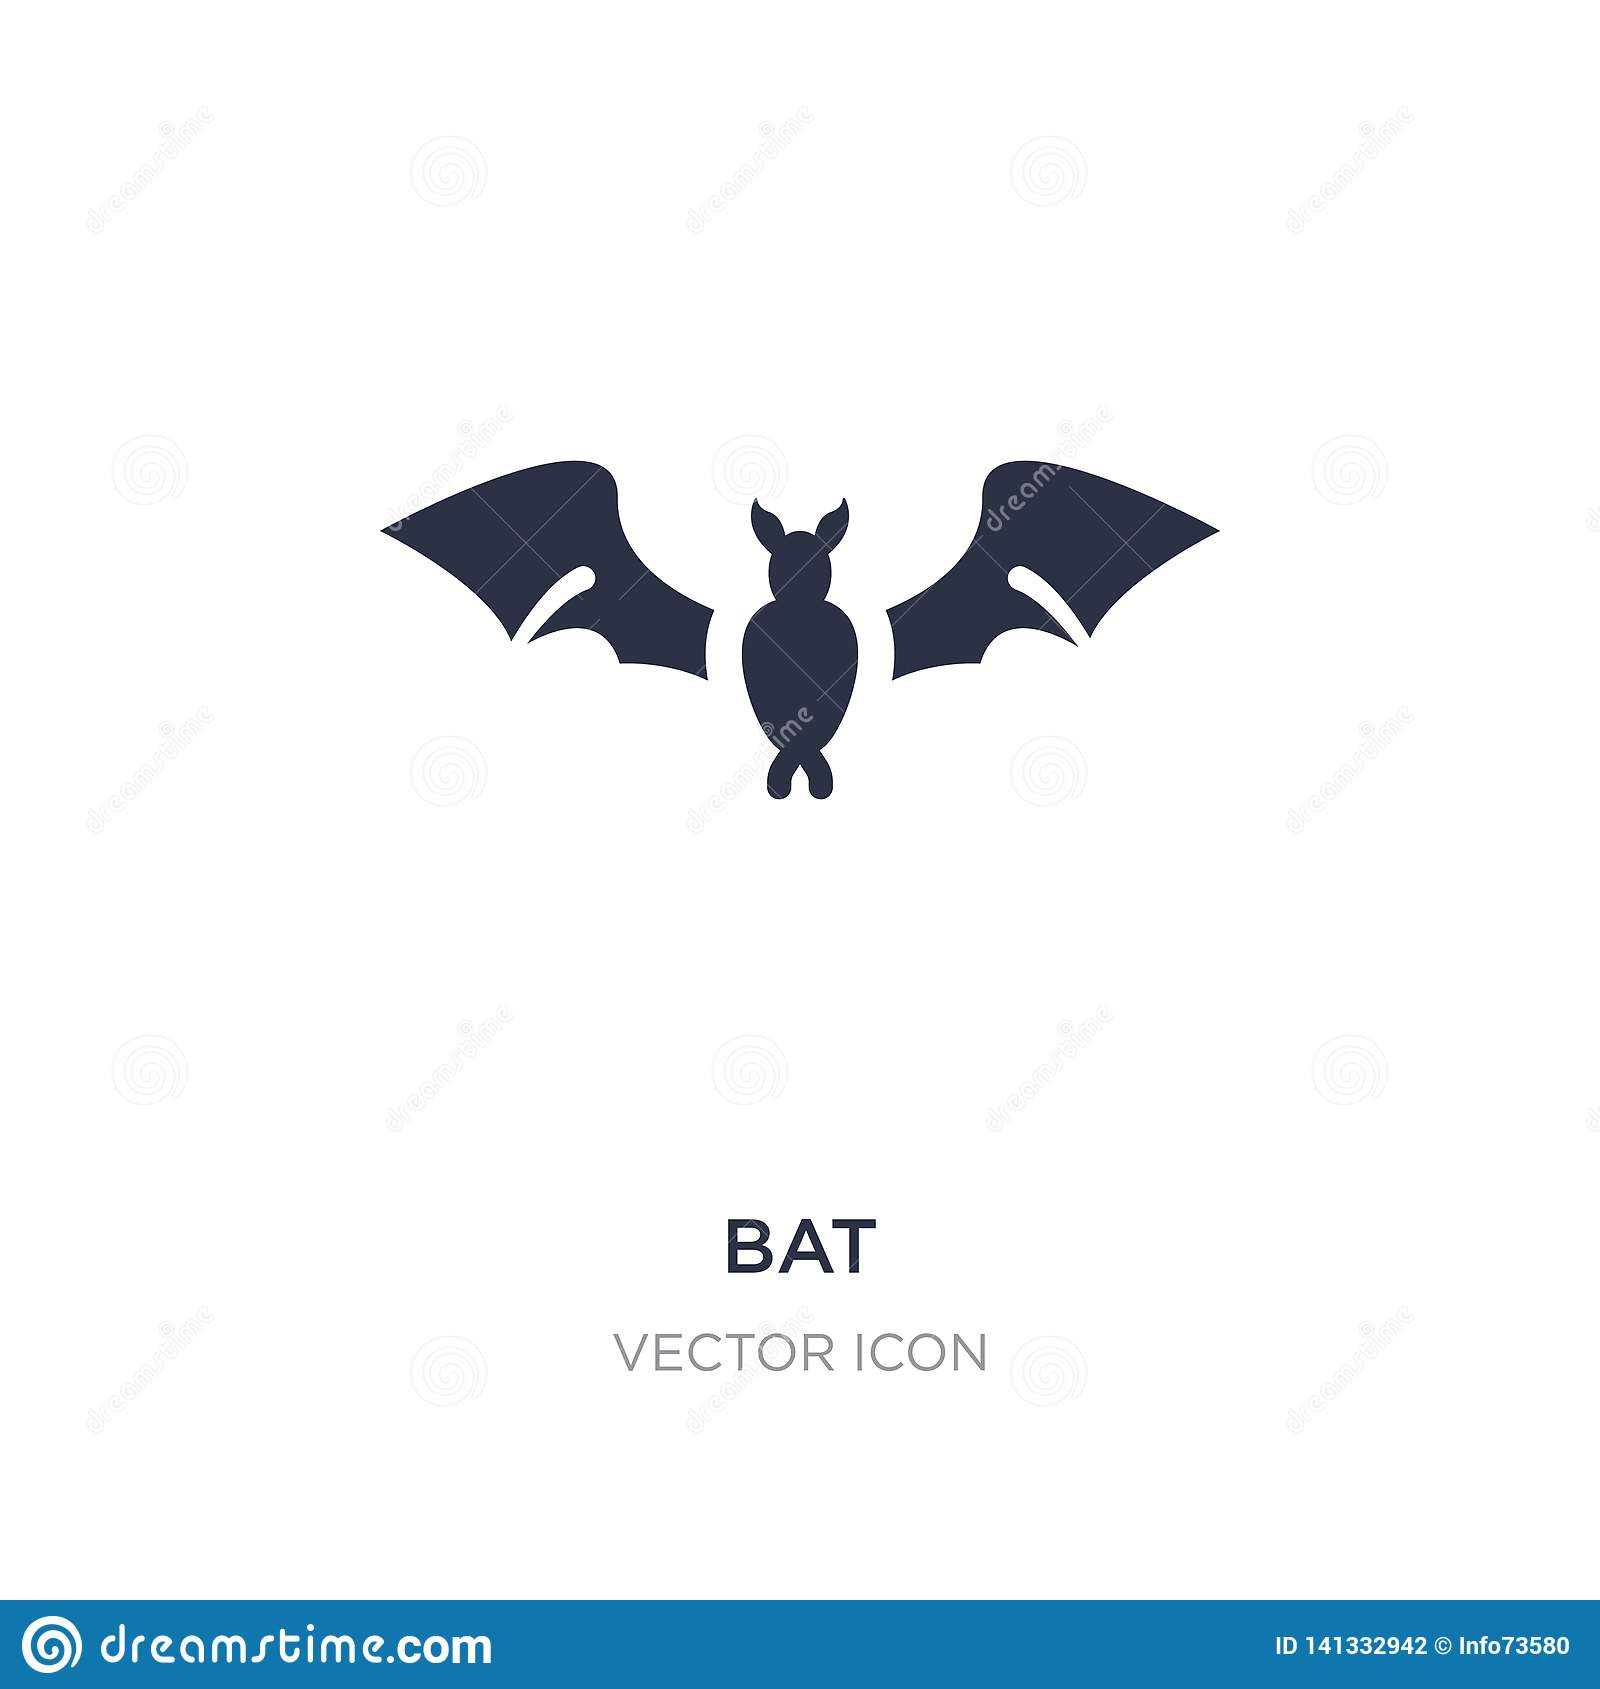 bat icon on white background. Simple element illustration from Autumn concept